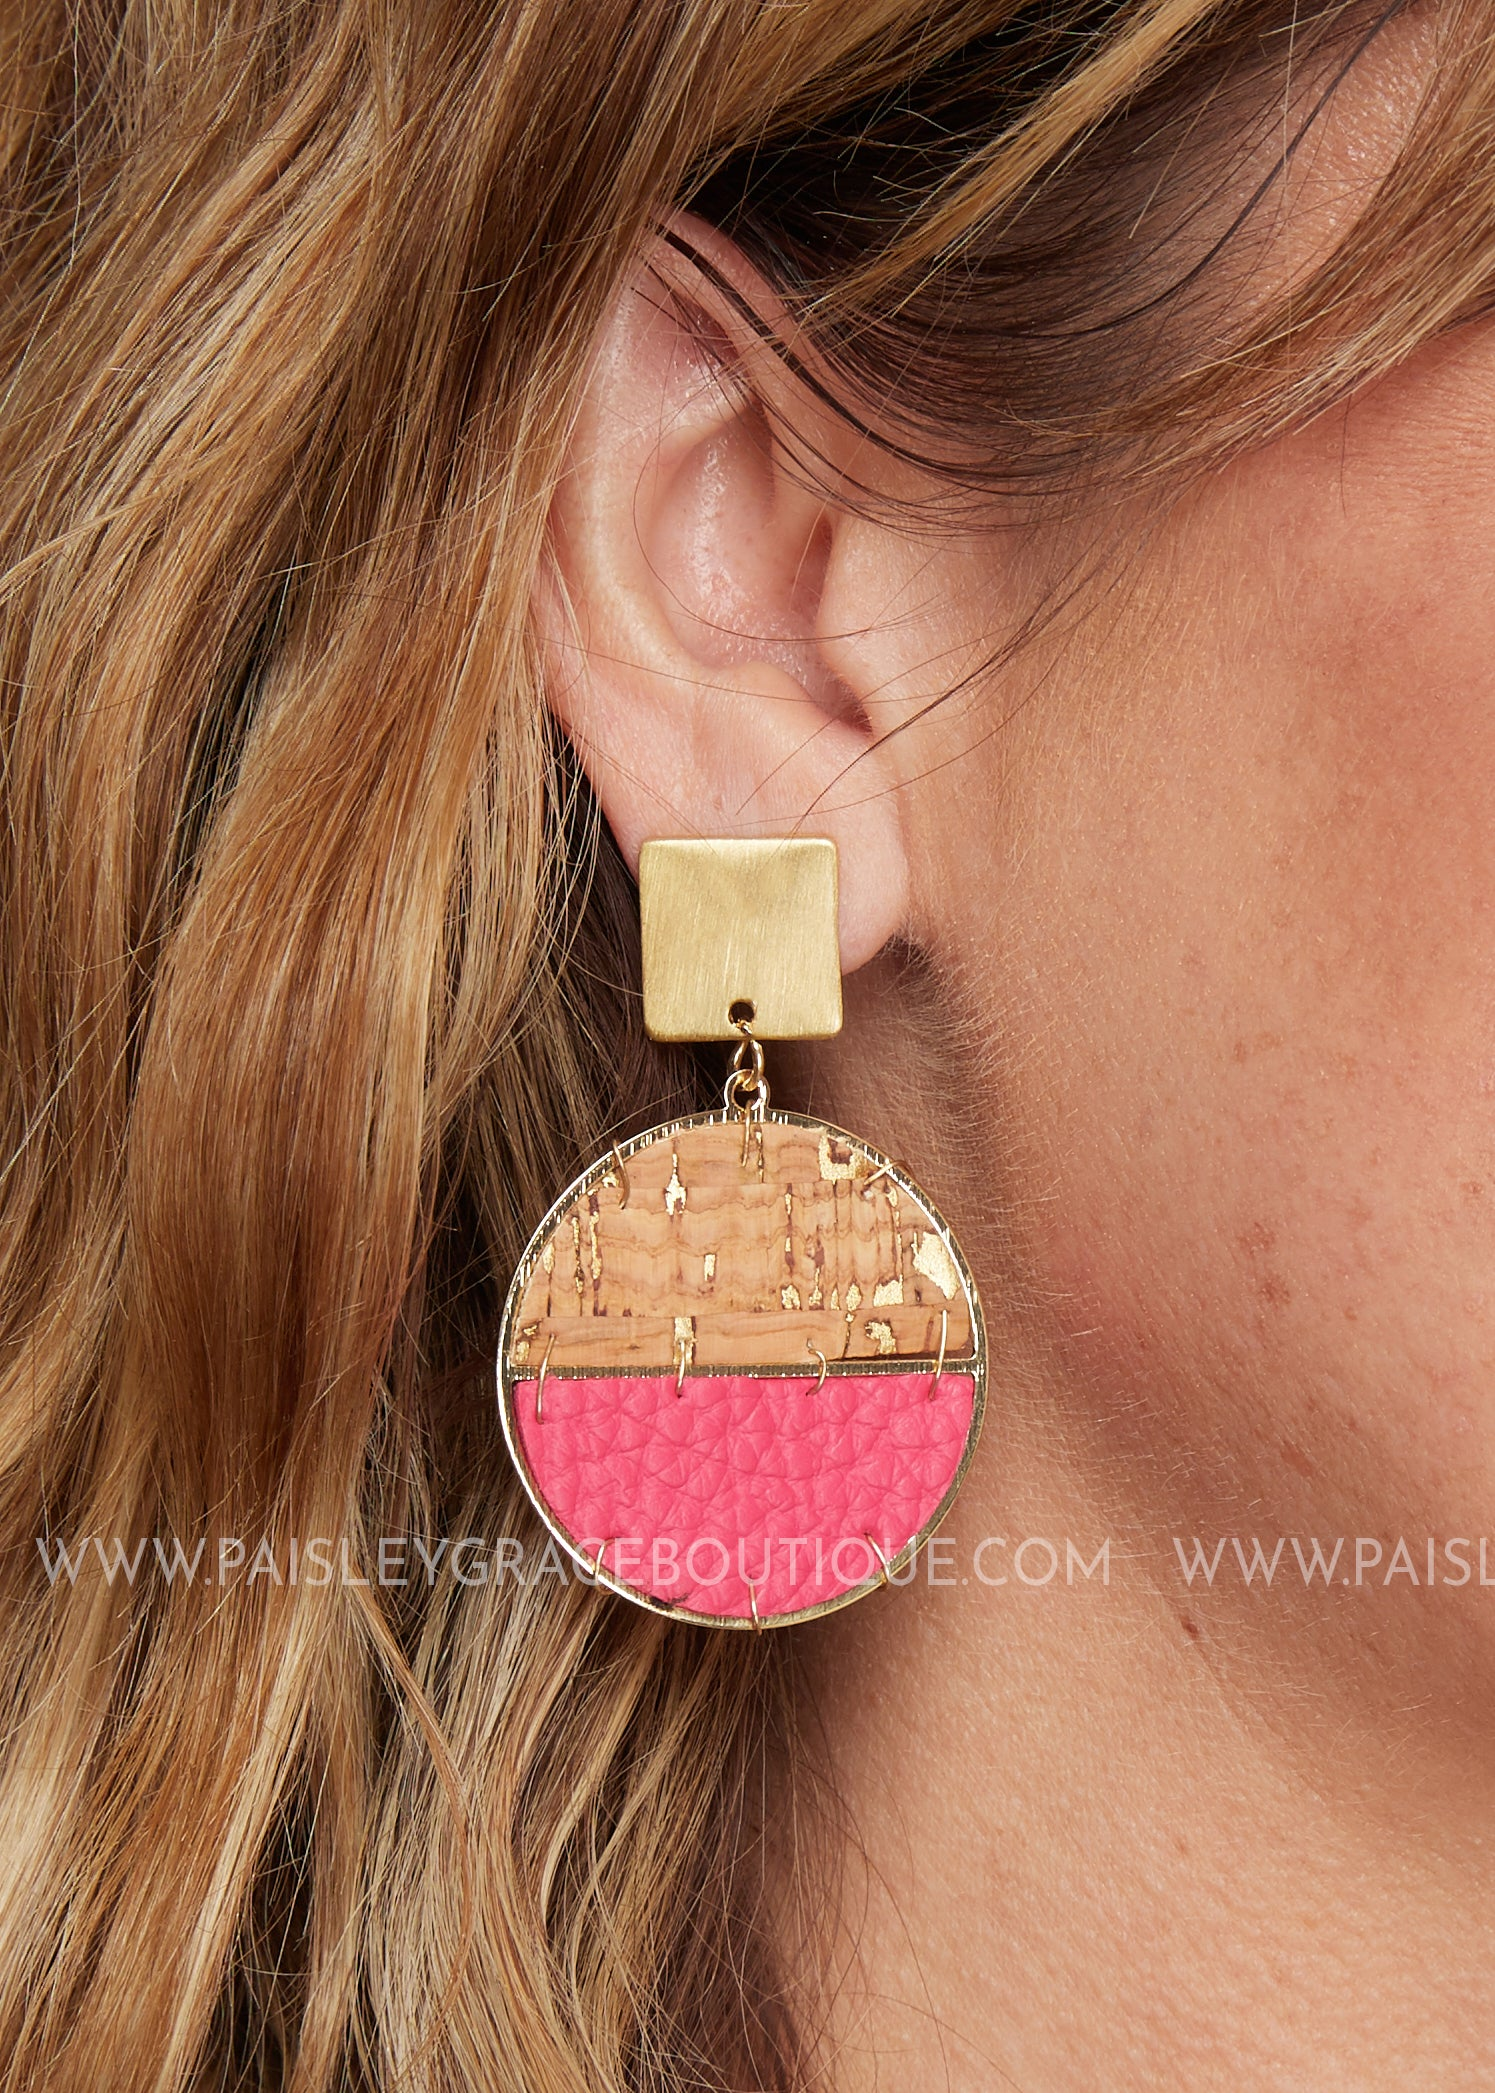 Sausalito Earrings- Hot pink